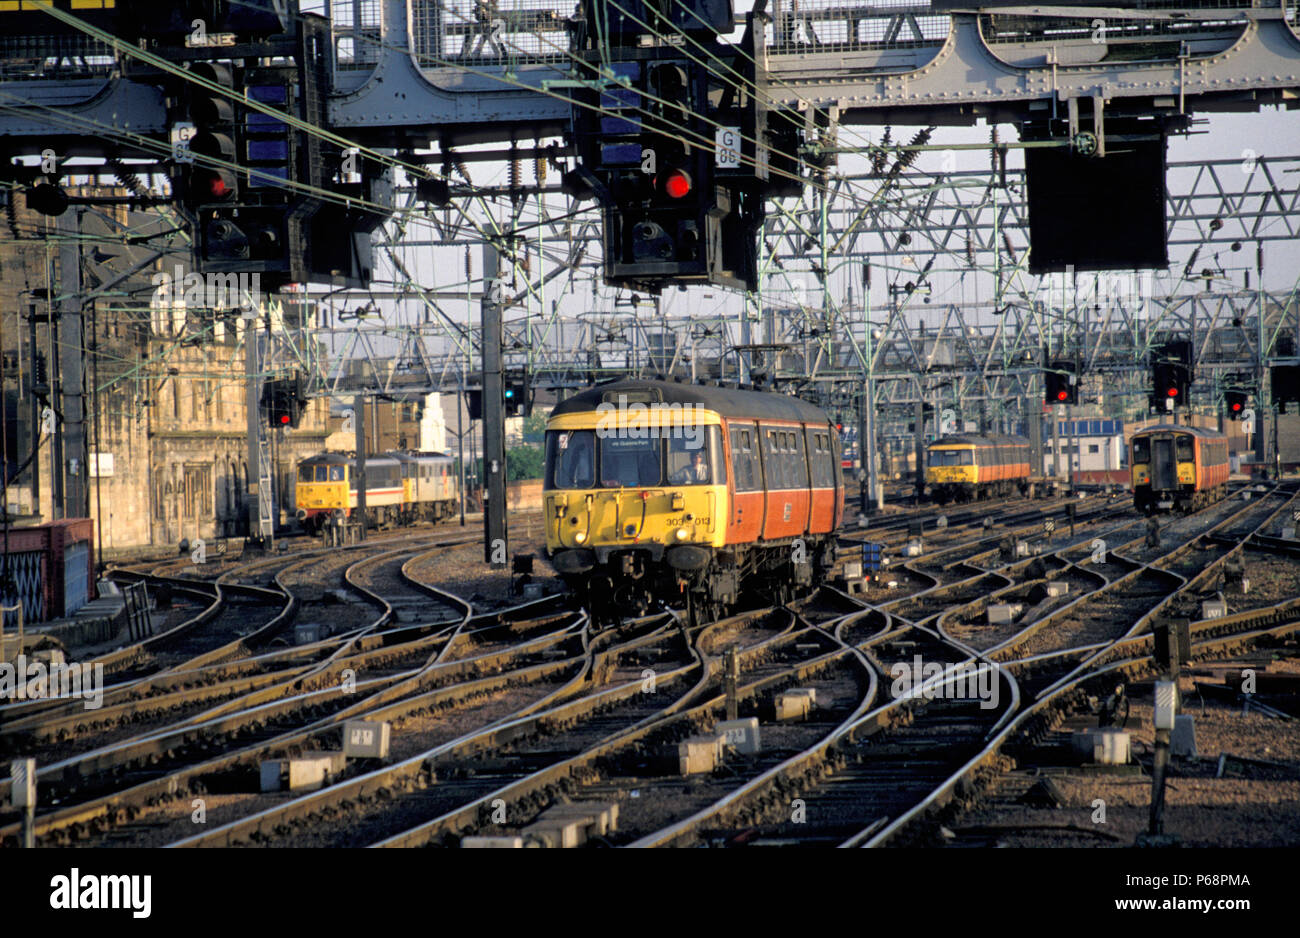 Throat of Glasgow Central station looking south with Strathclyde Passenger Transport services in the picture. C 1993 - Stock Image